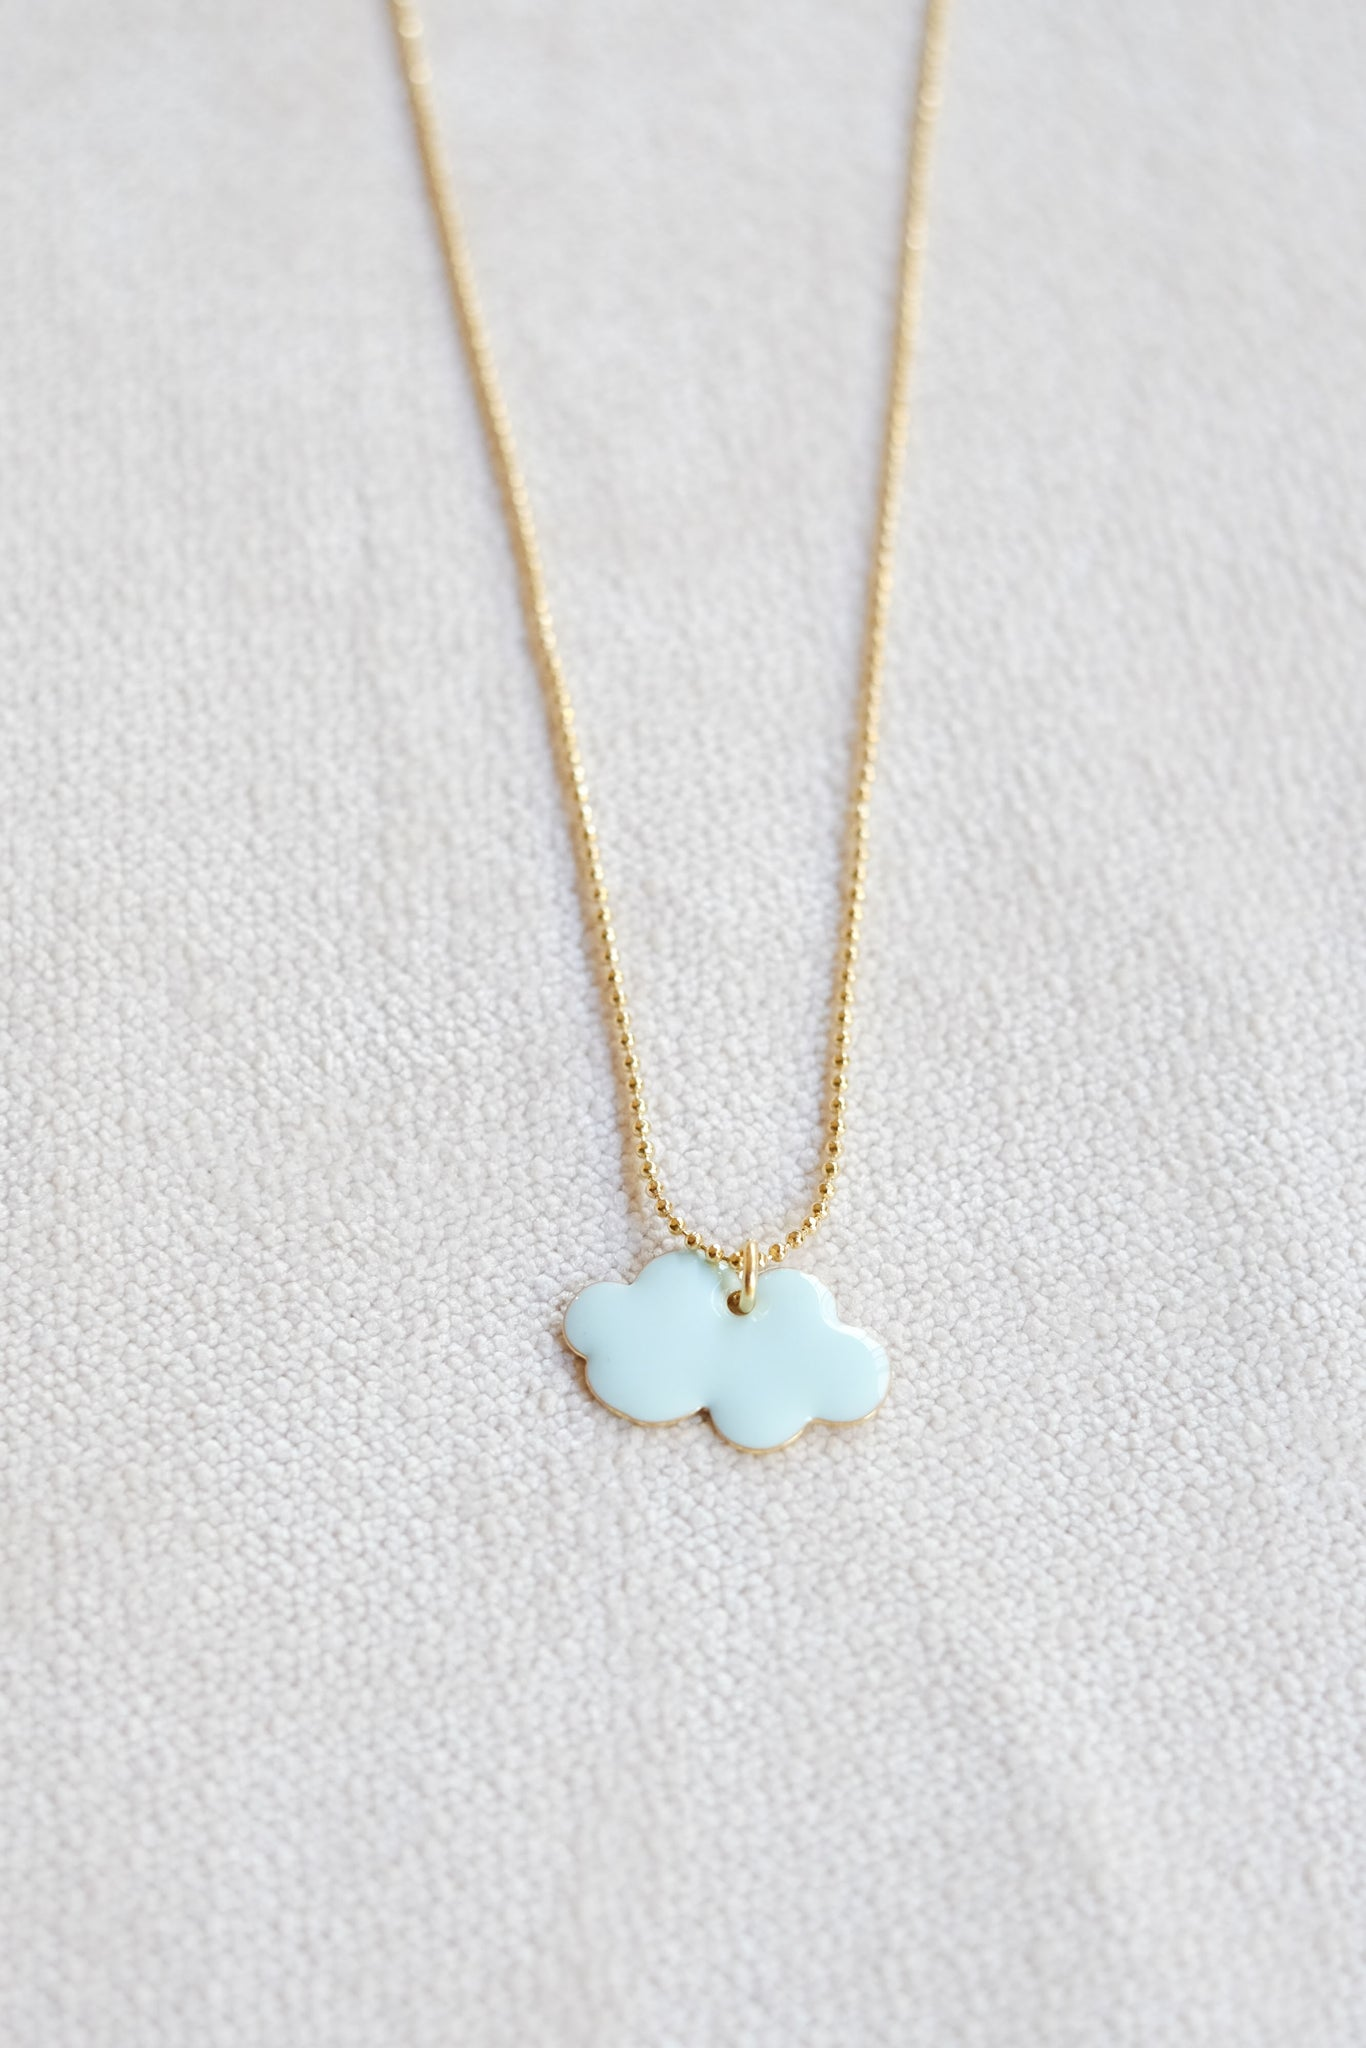 Titlee :: Cloud Necklace